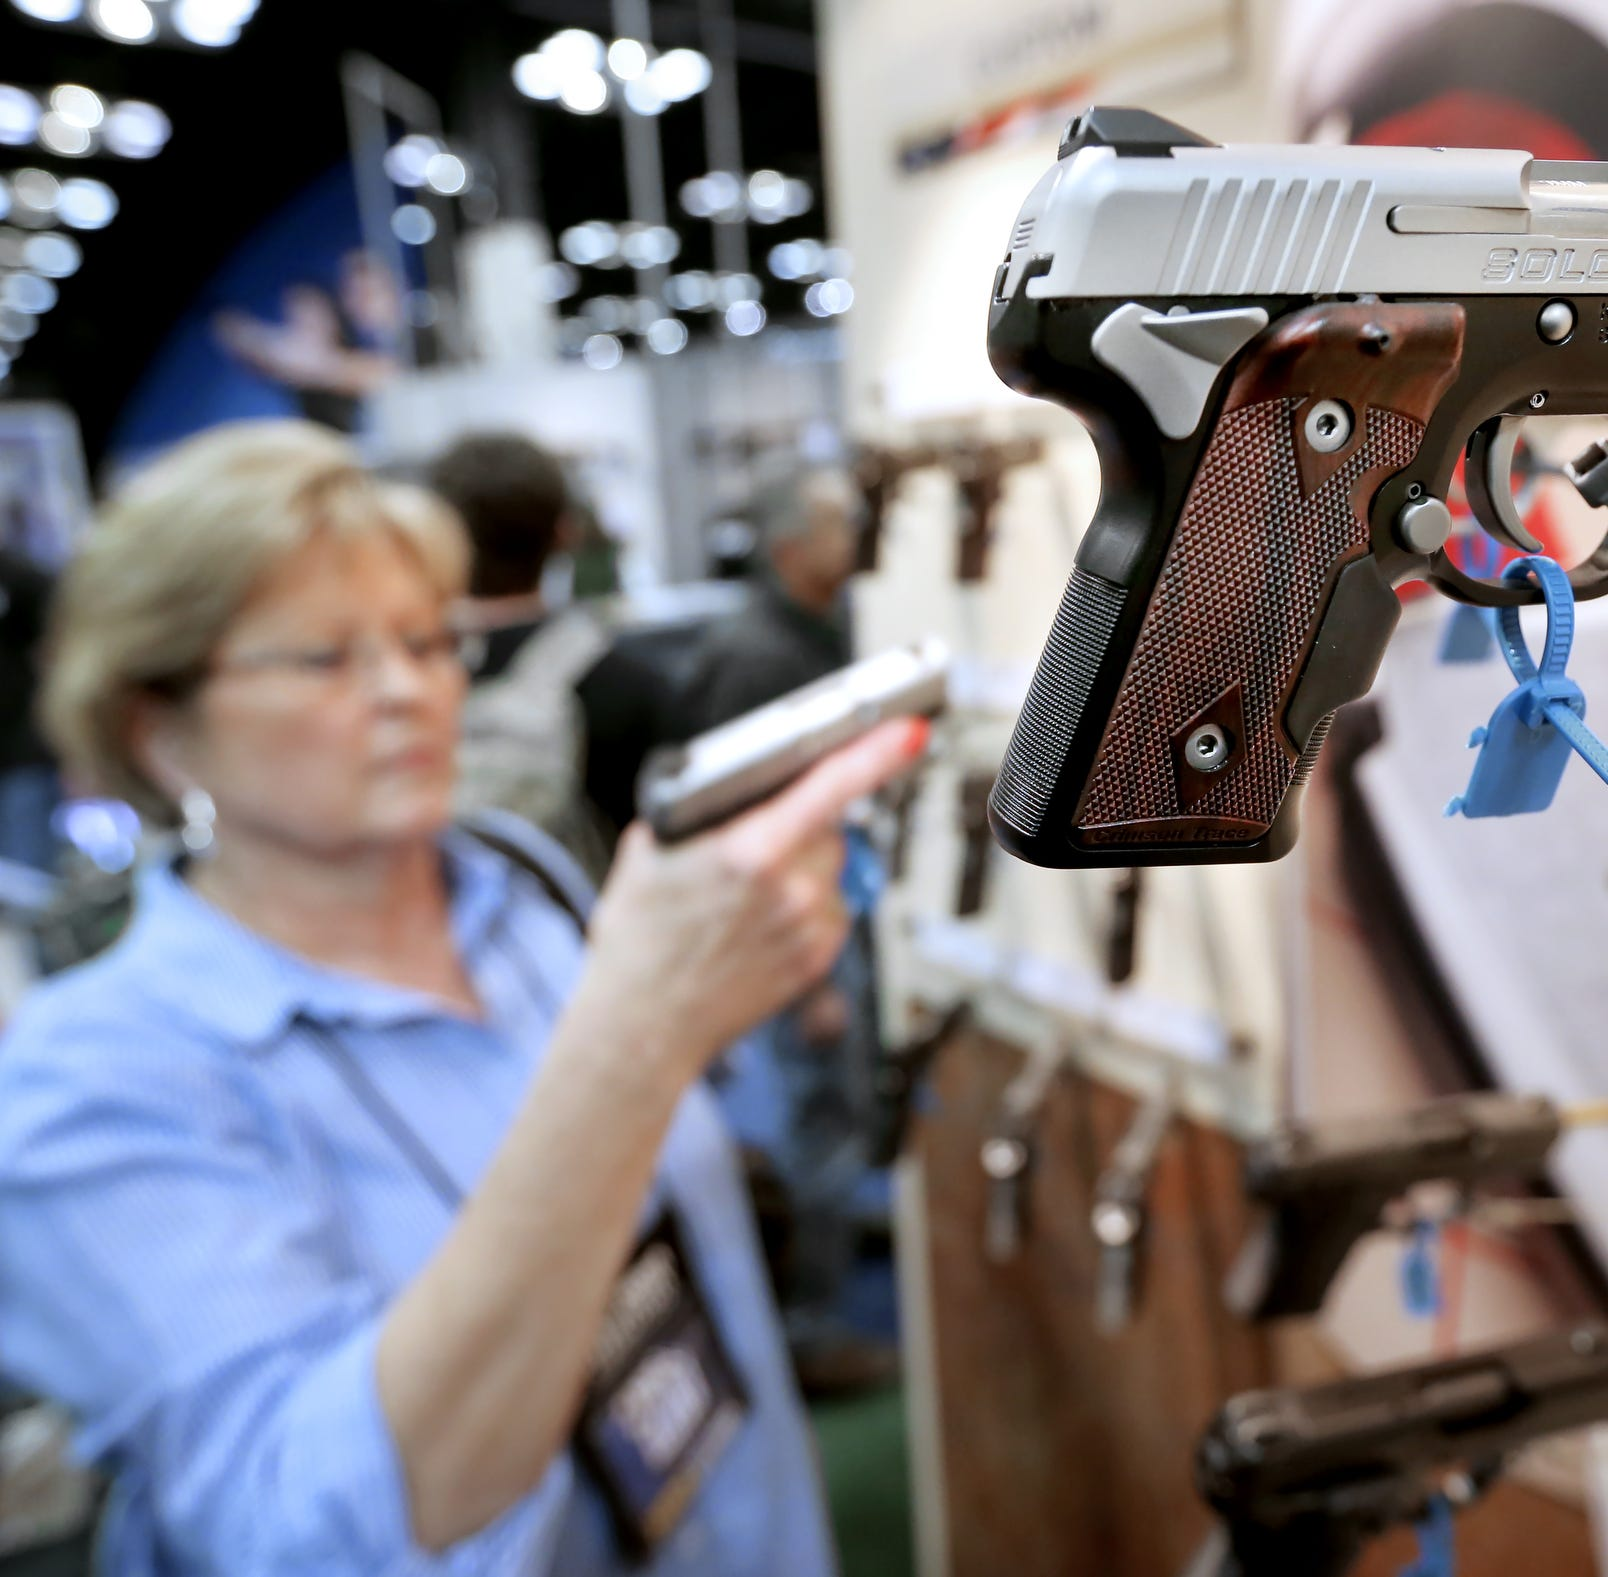 The NRA convention is coming to Indianapolis. Here's where it's legal to carry a gun.